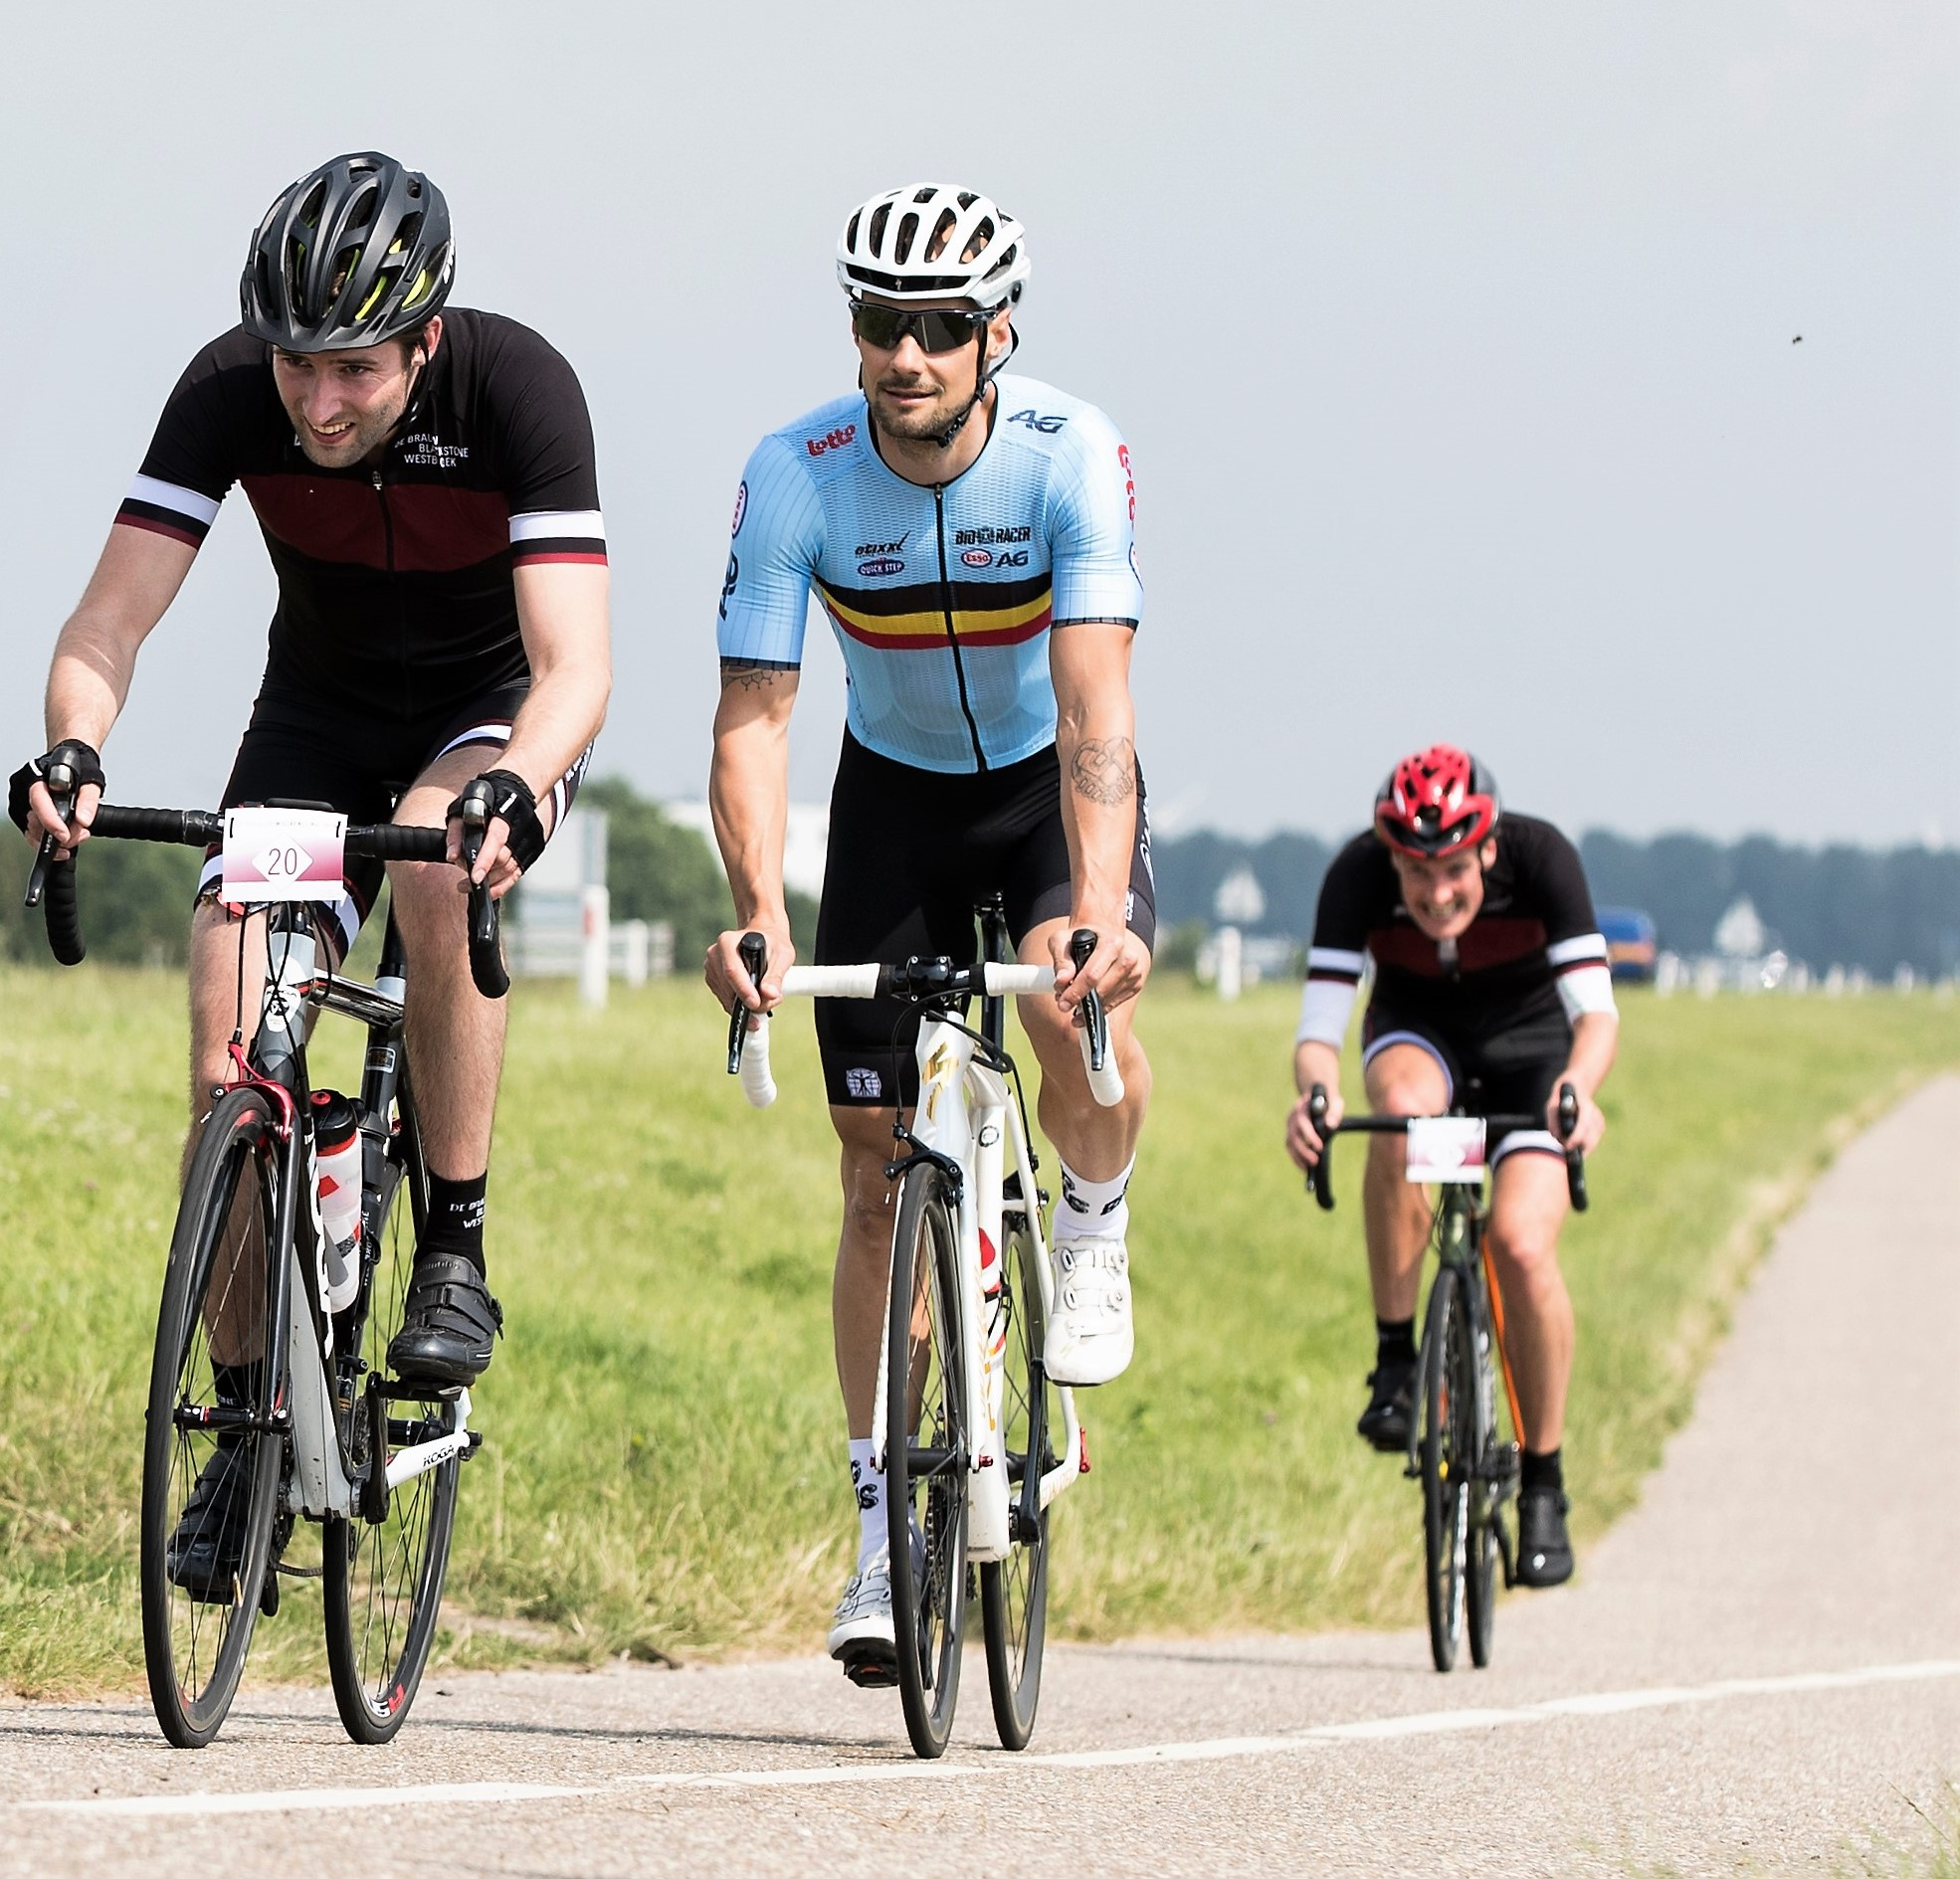 MIR Sportmarketing Tom Boonen clinic